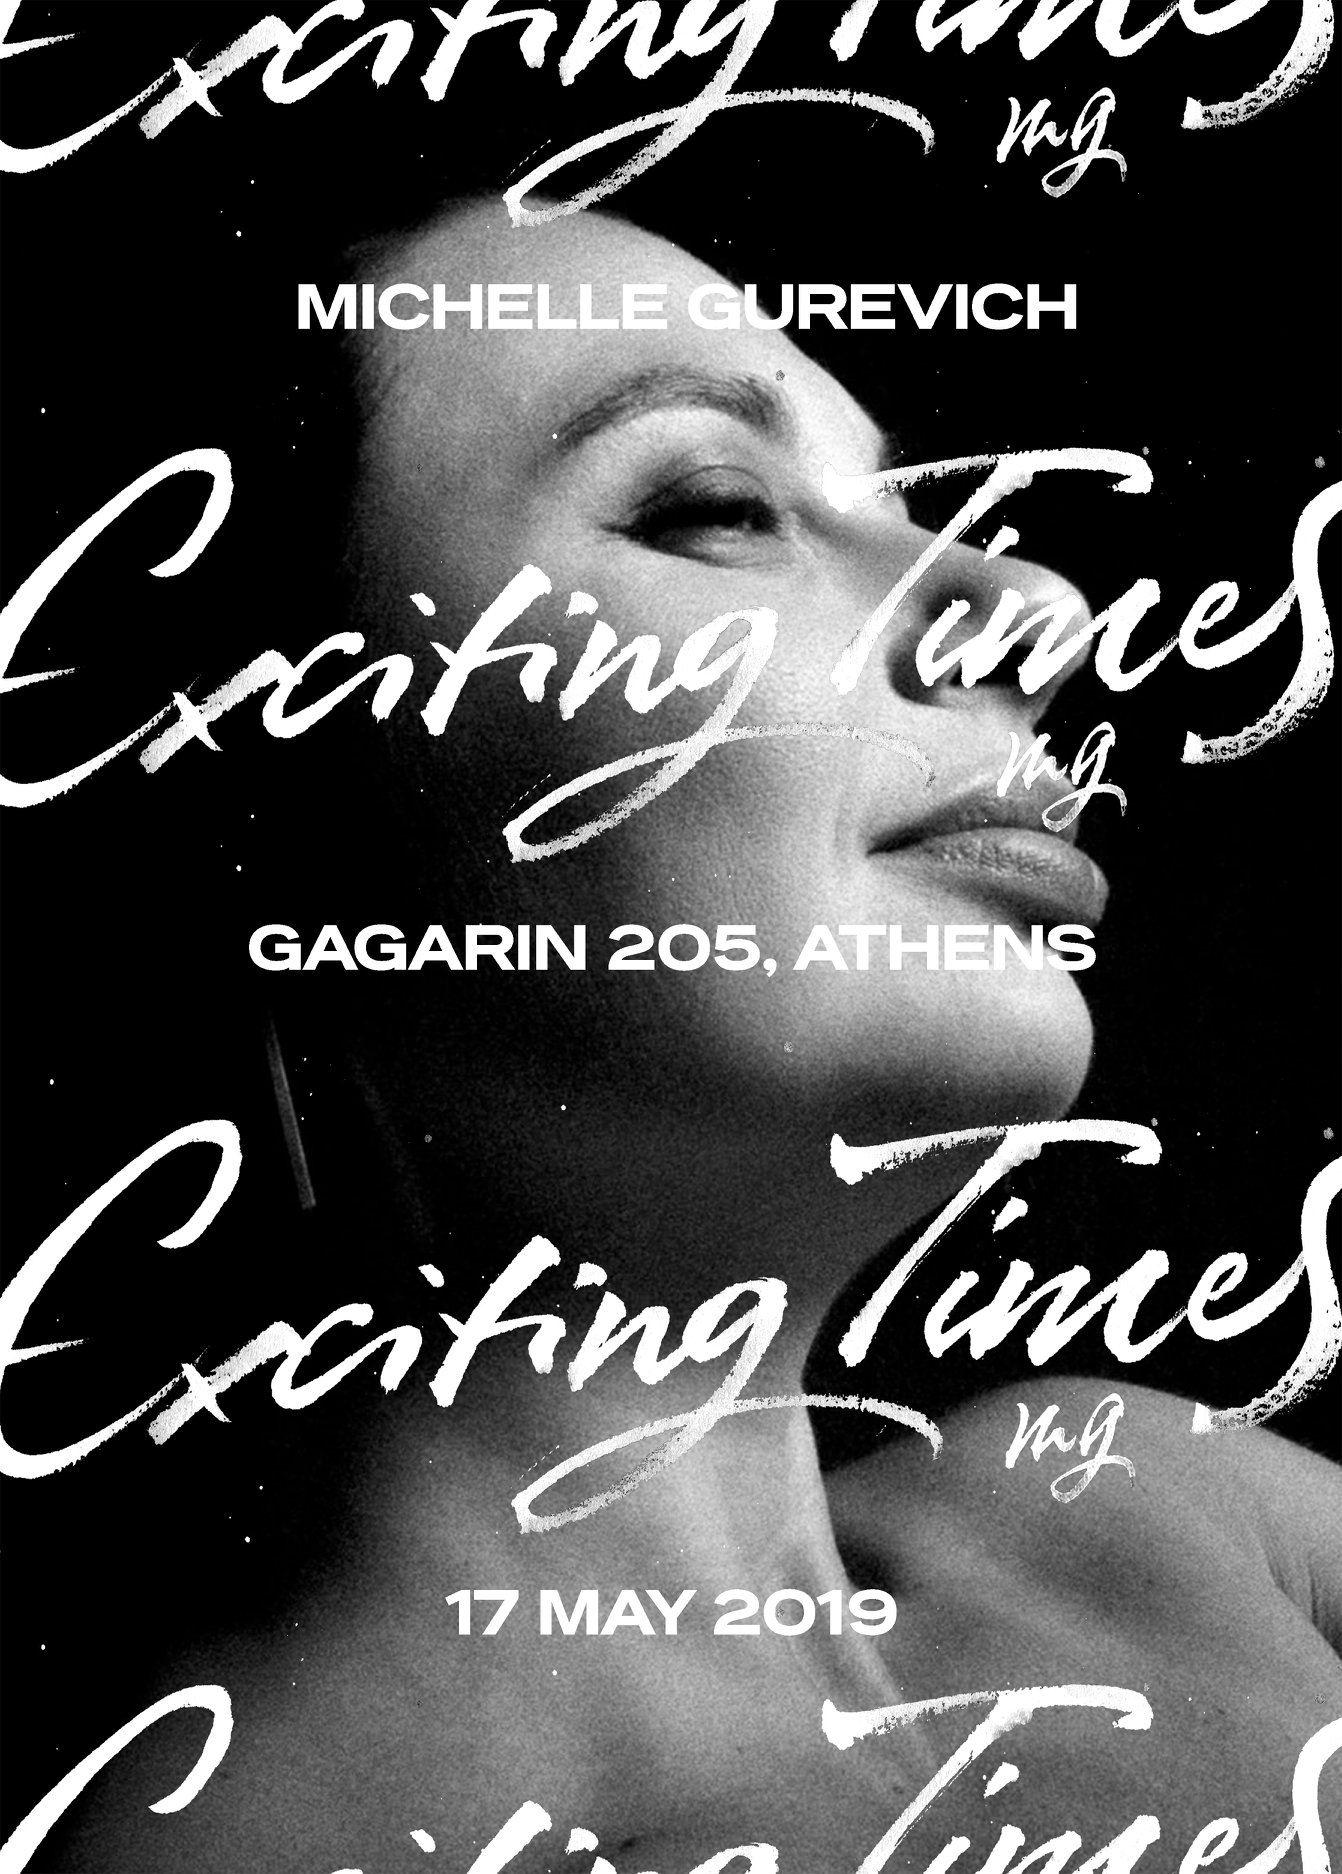 190415-michelle-gurevich-gagarin-205-announcement-01